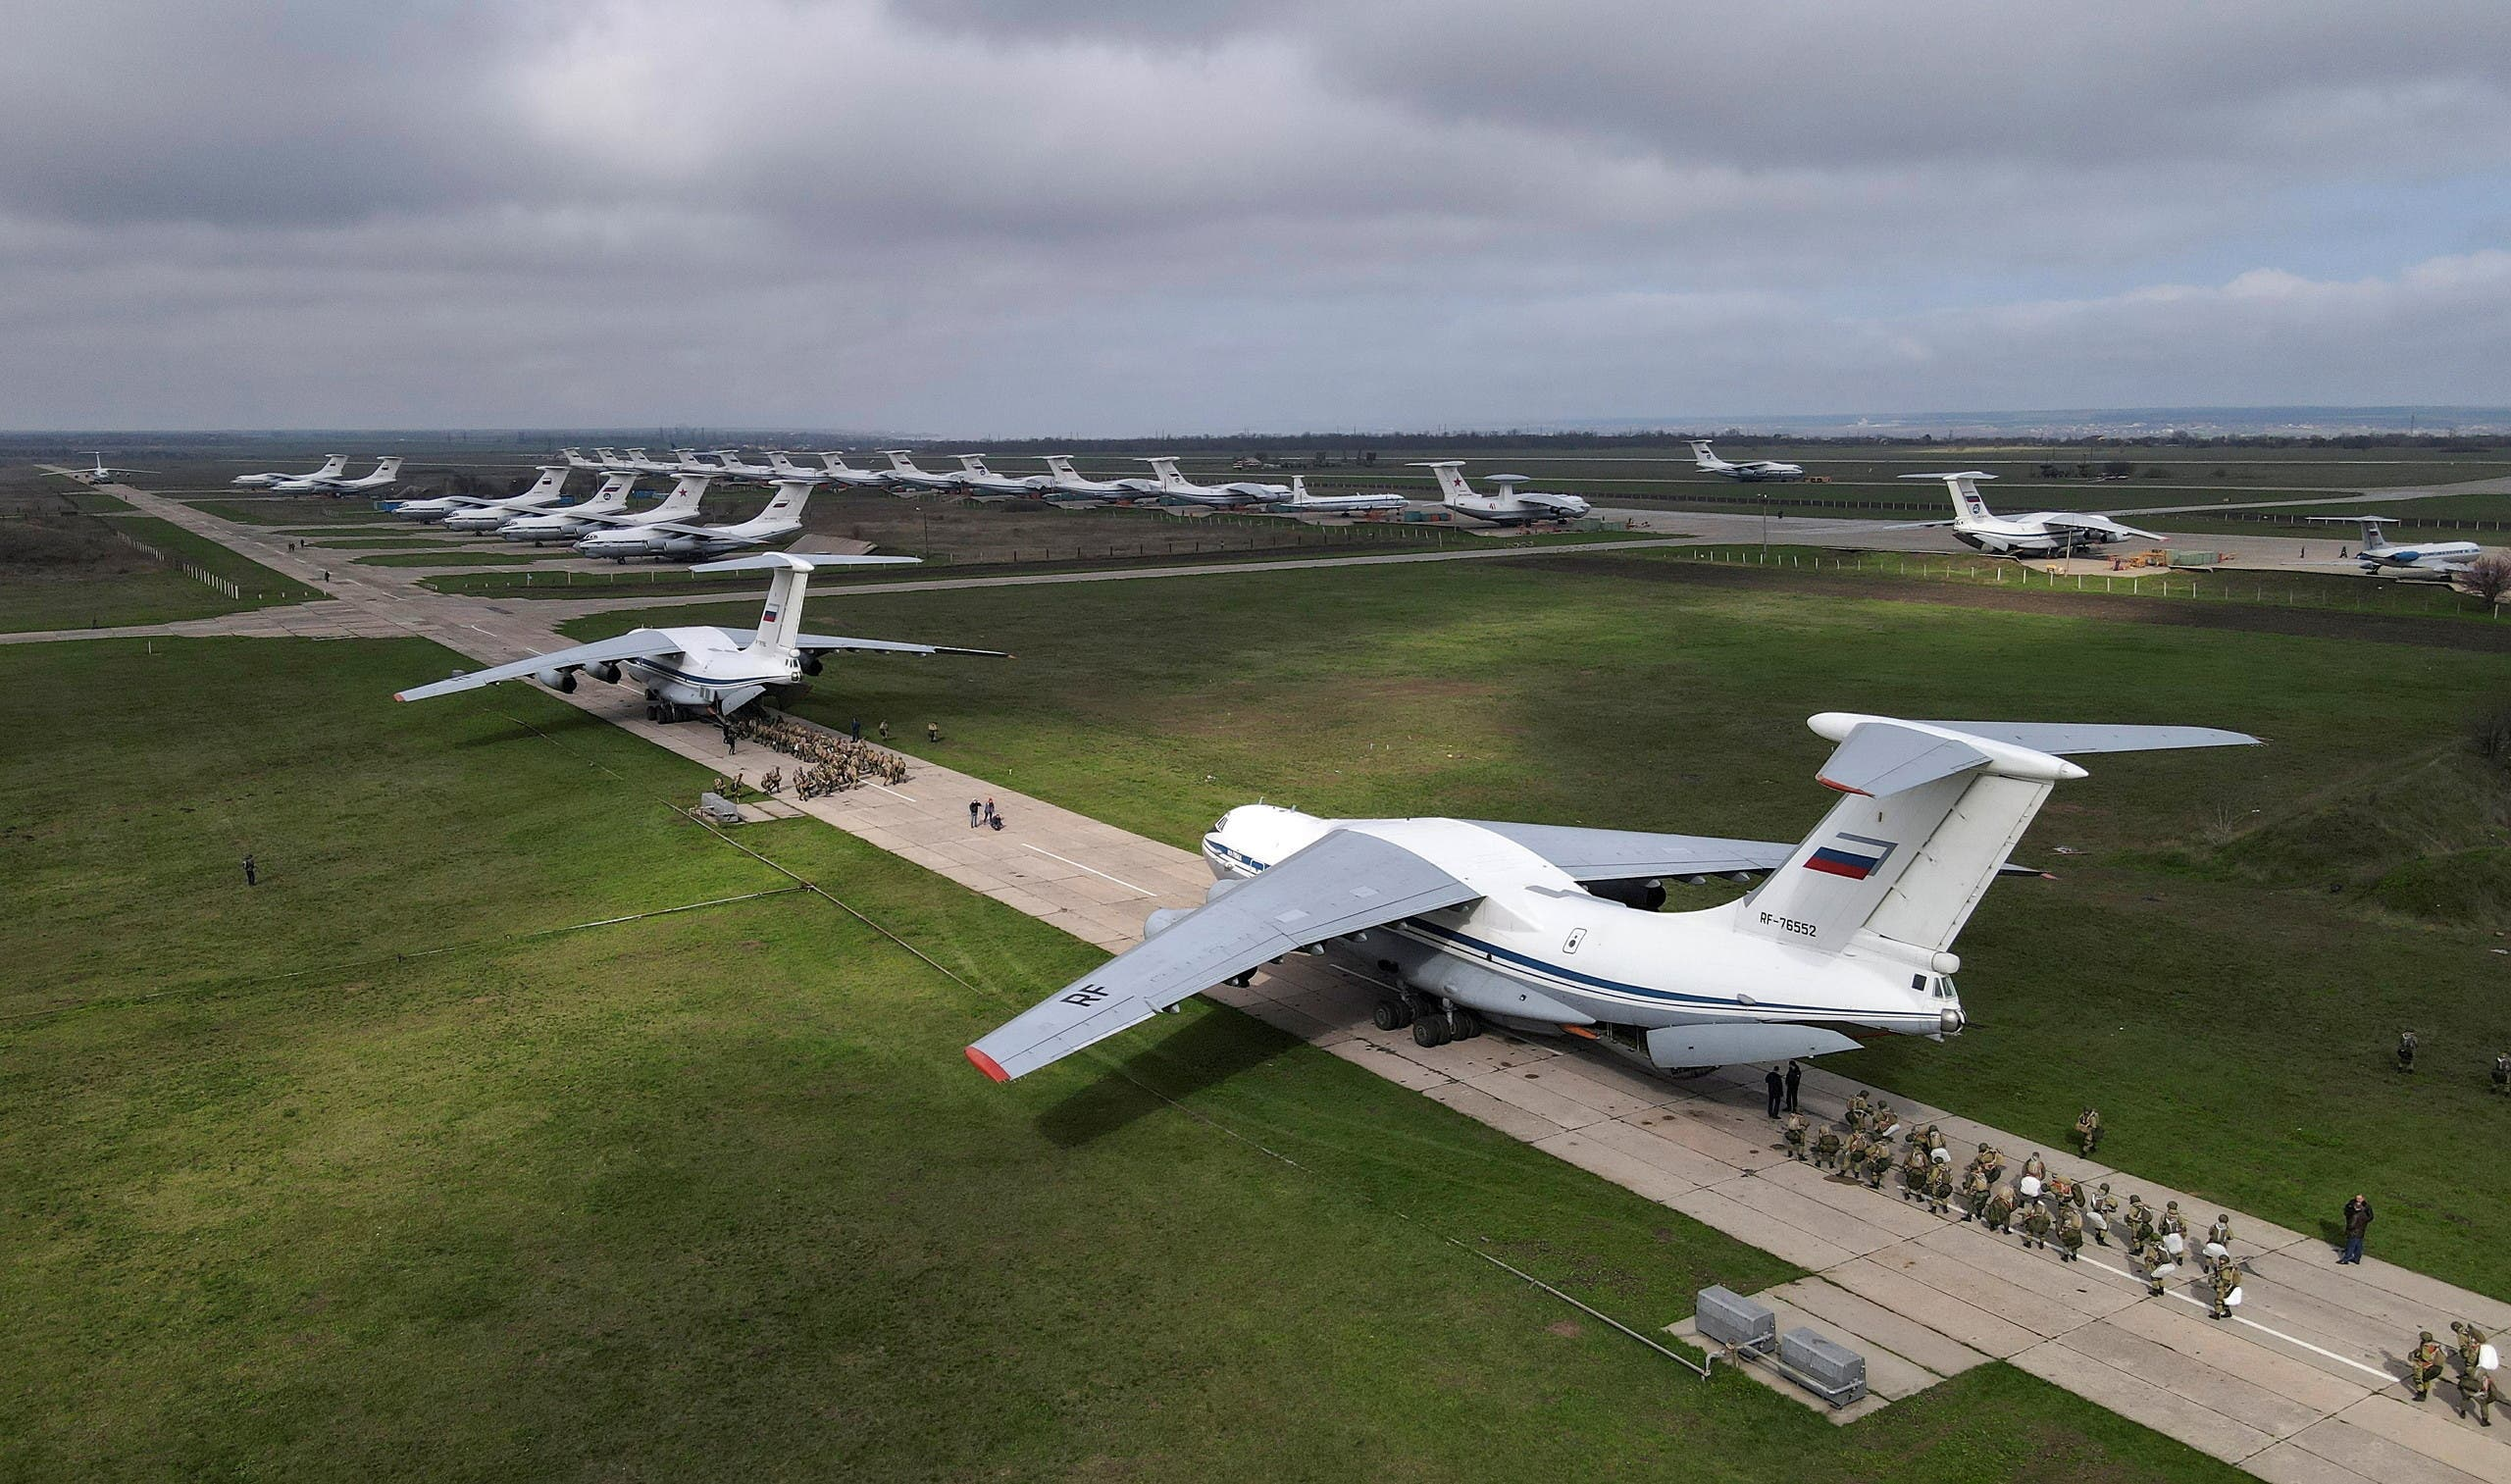 Service members of the Russian airborne forces board Ilyushin Il-76 transport planes during drills at a military aerodrome in the Azov Sea port of Taganrog, Russia April 22, 2021. Picture taken with a drone. (File photo: Reuters)